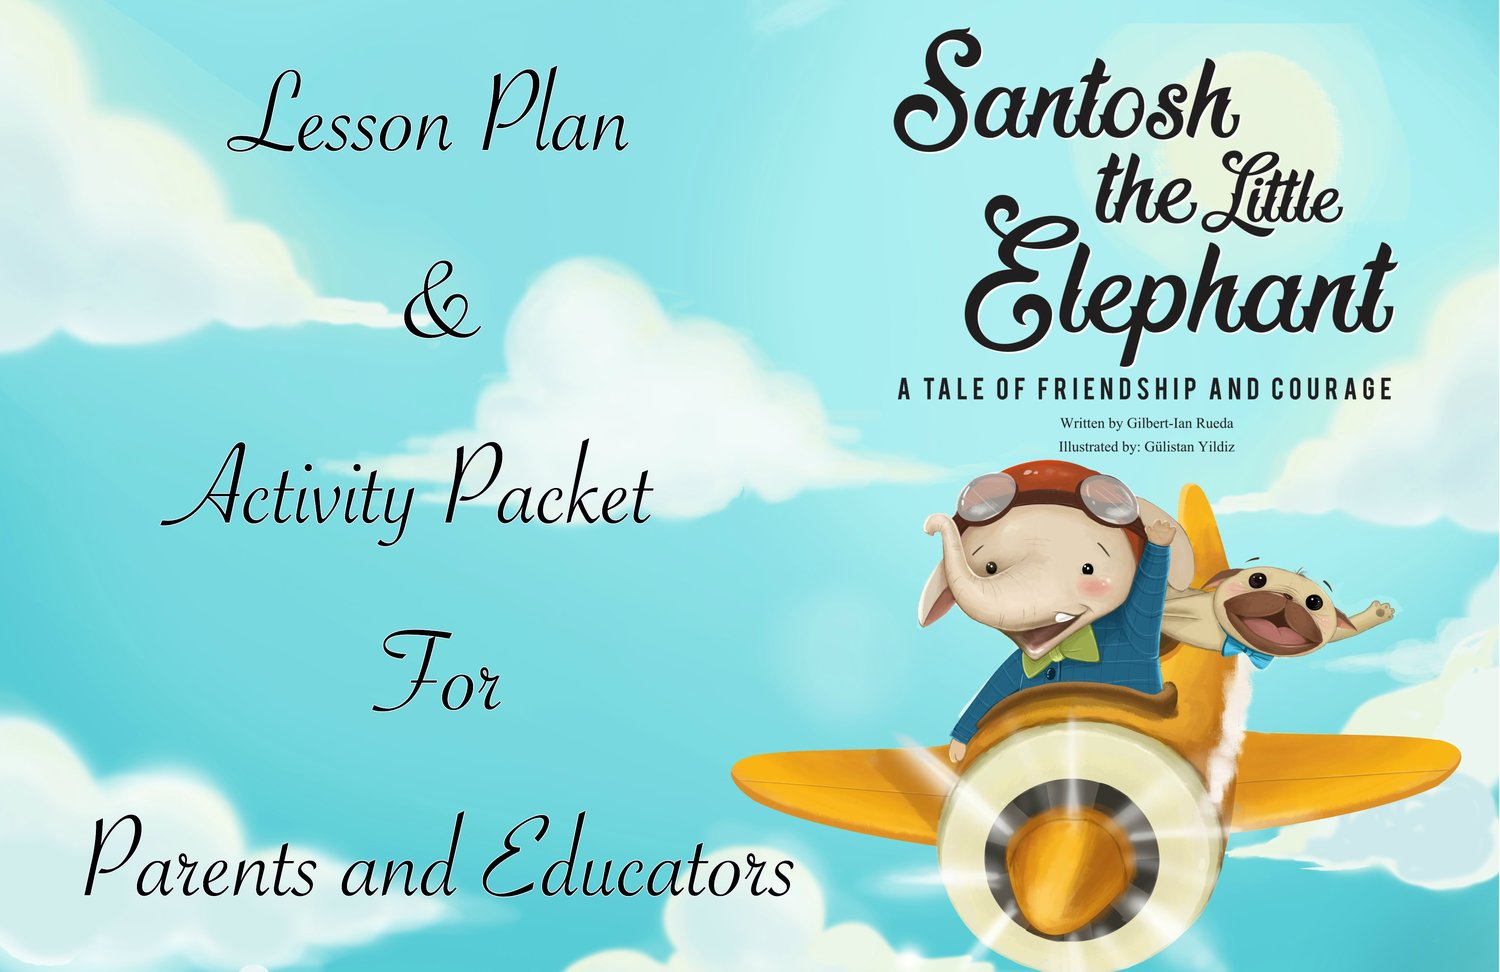 The Santosh Lesson Plan & Activity Packet